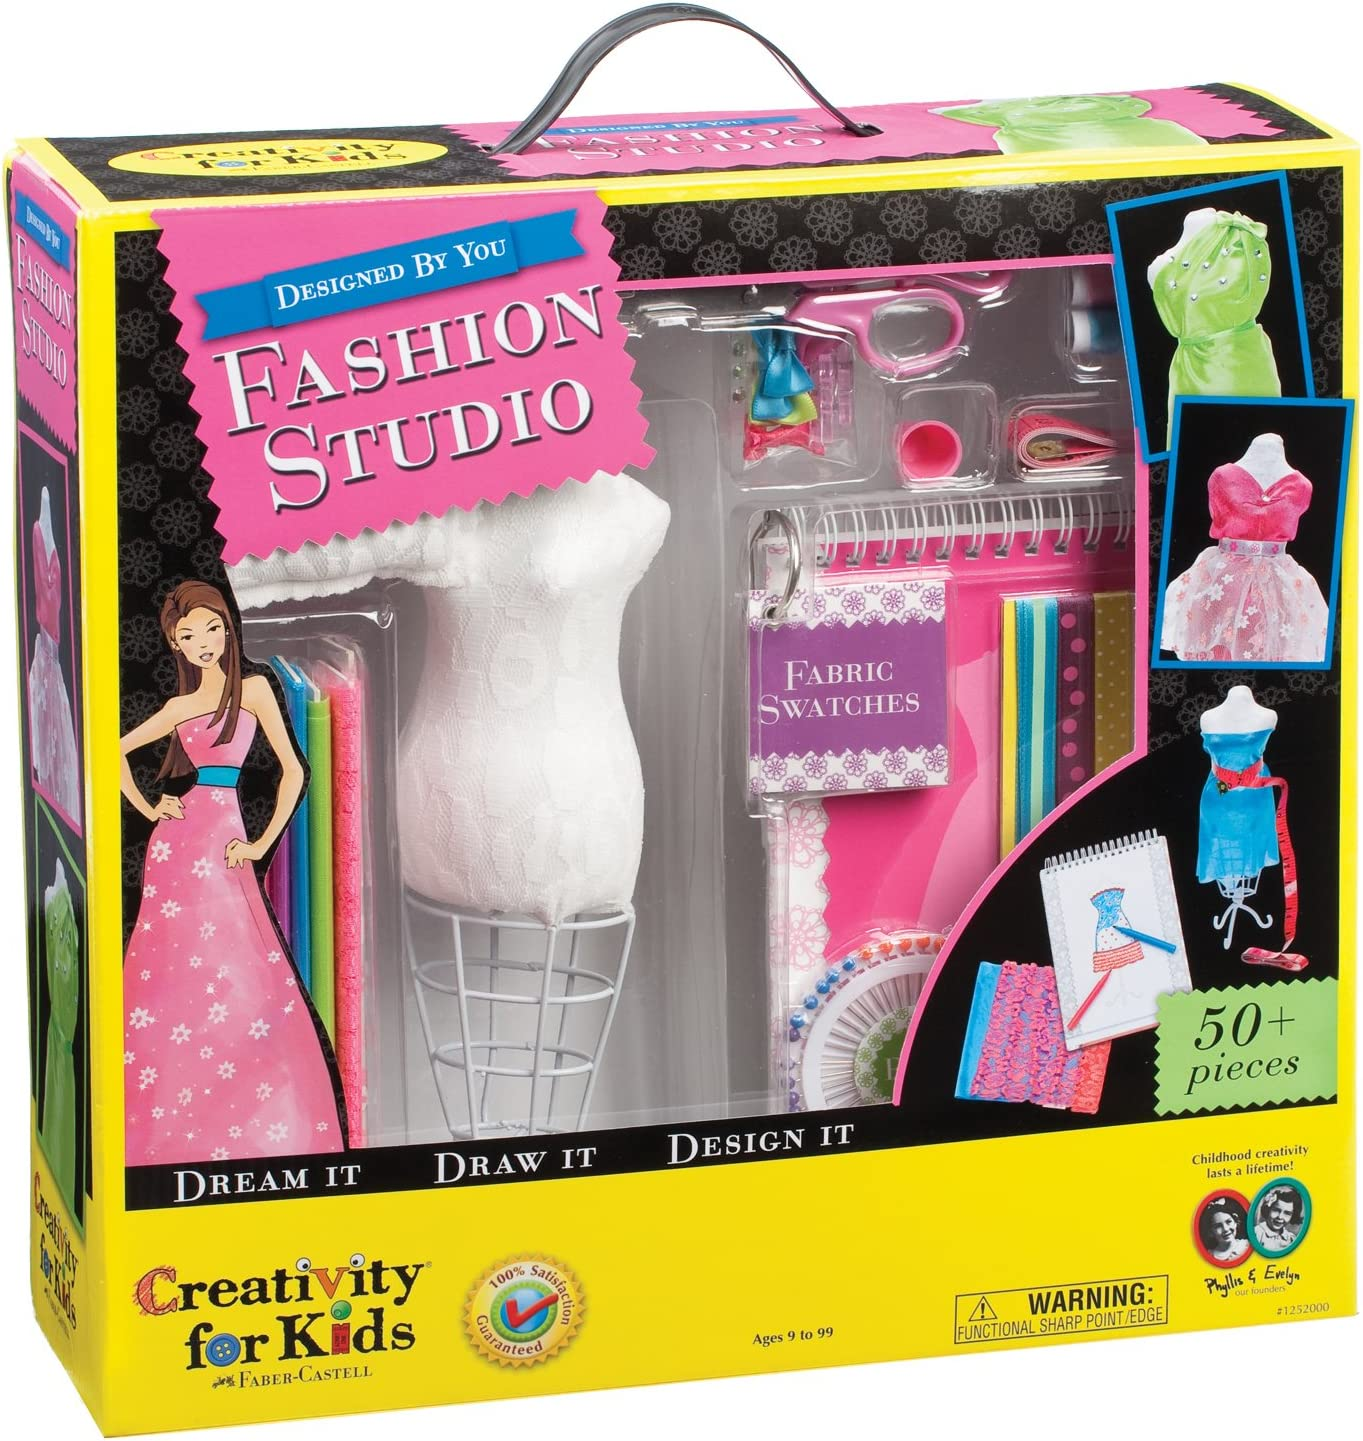 Creativity For Kids Designed By You Fashion Studio Fashion Design Kit For Kids Toys Games